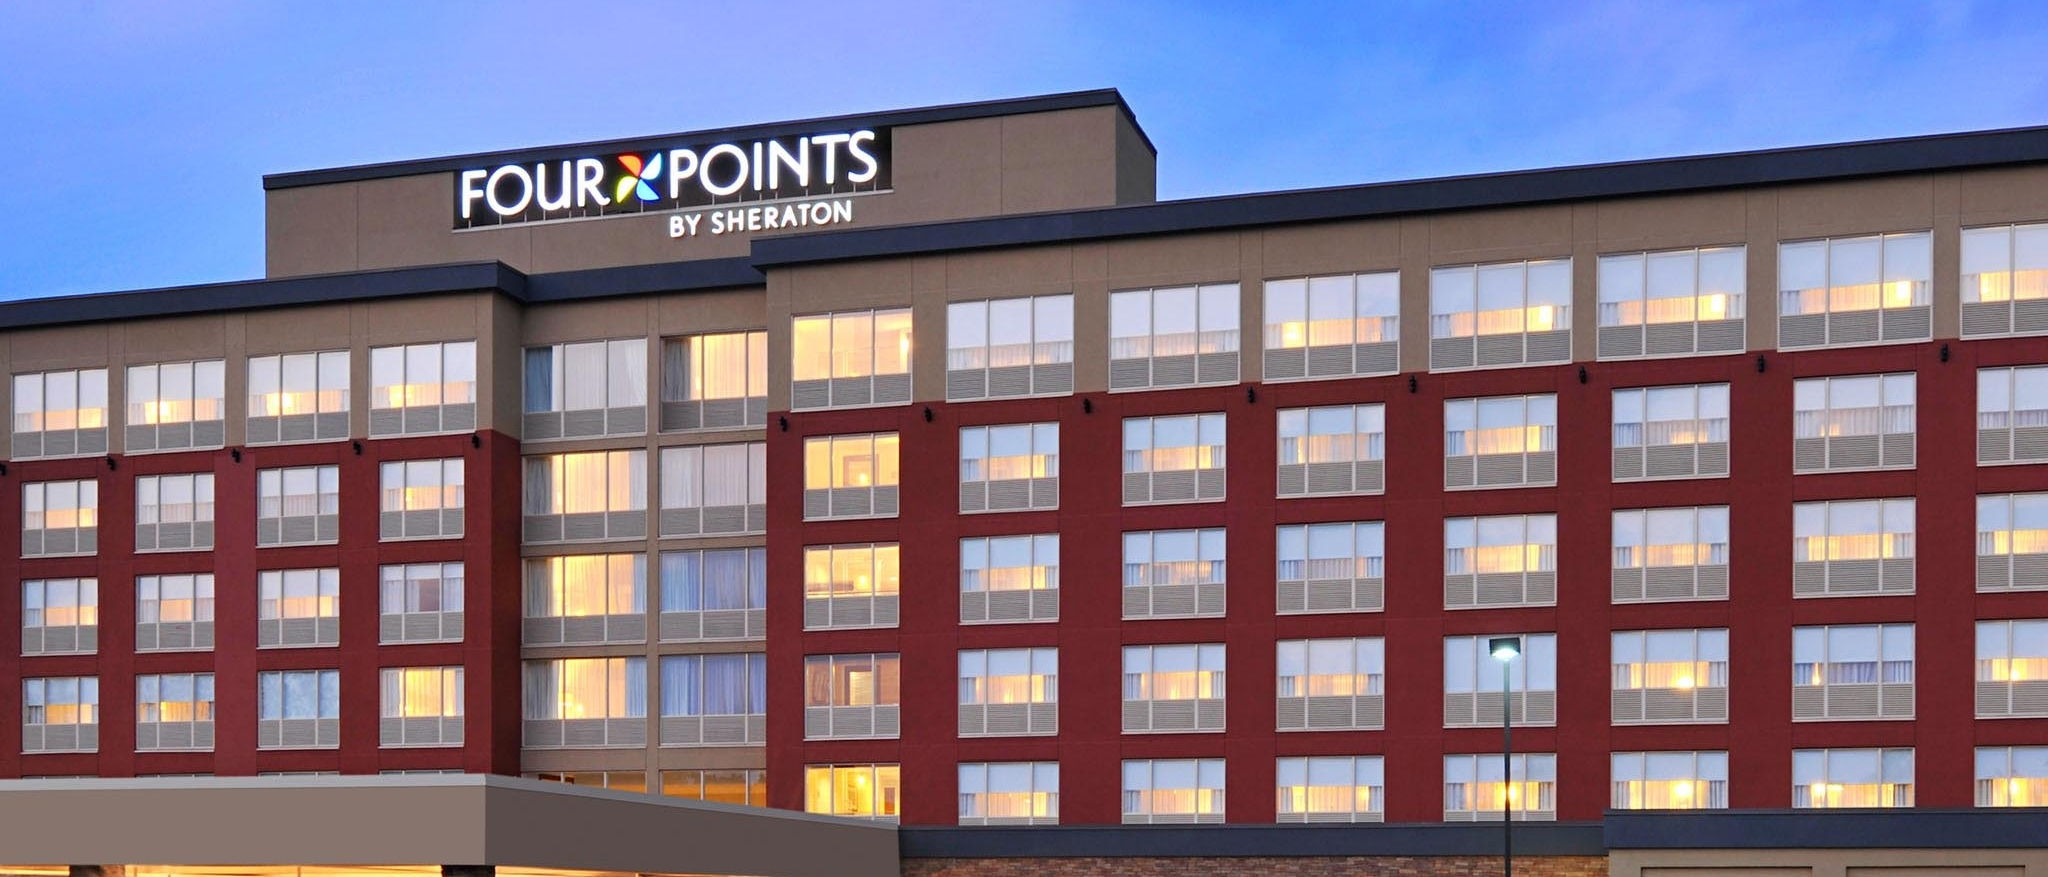 Four Points by Sheraton Cambridge Kitchener, Ontario - Hotel Exterior